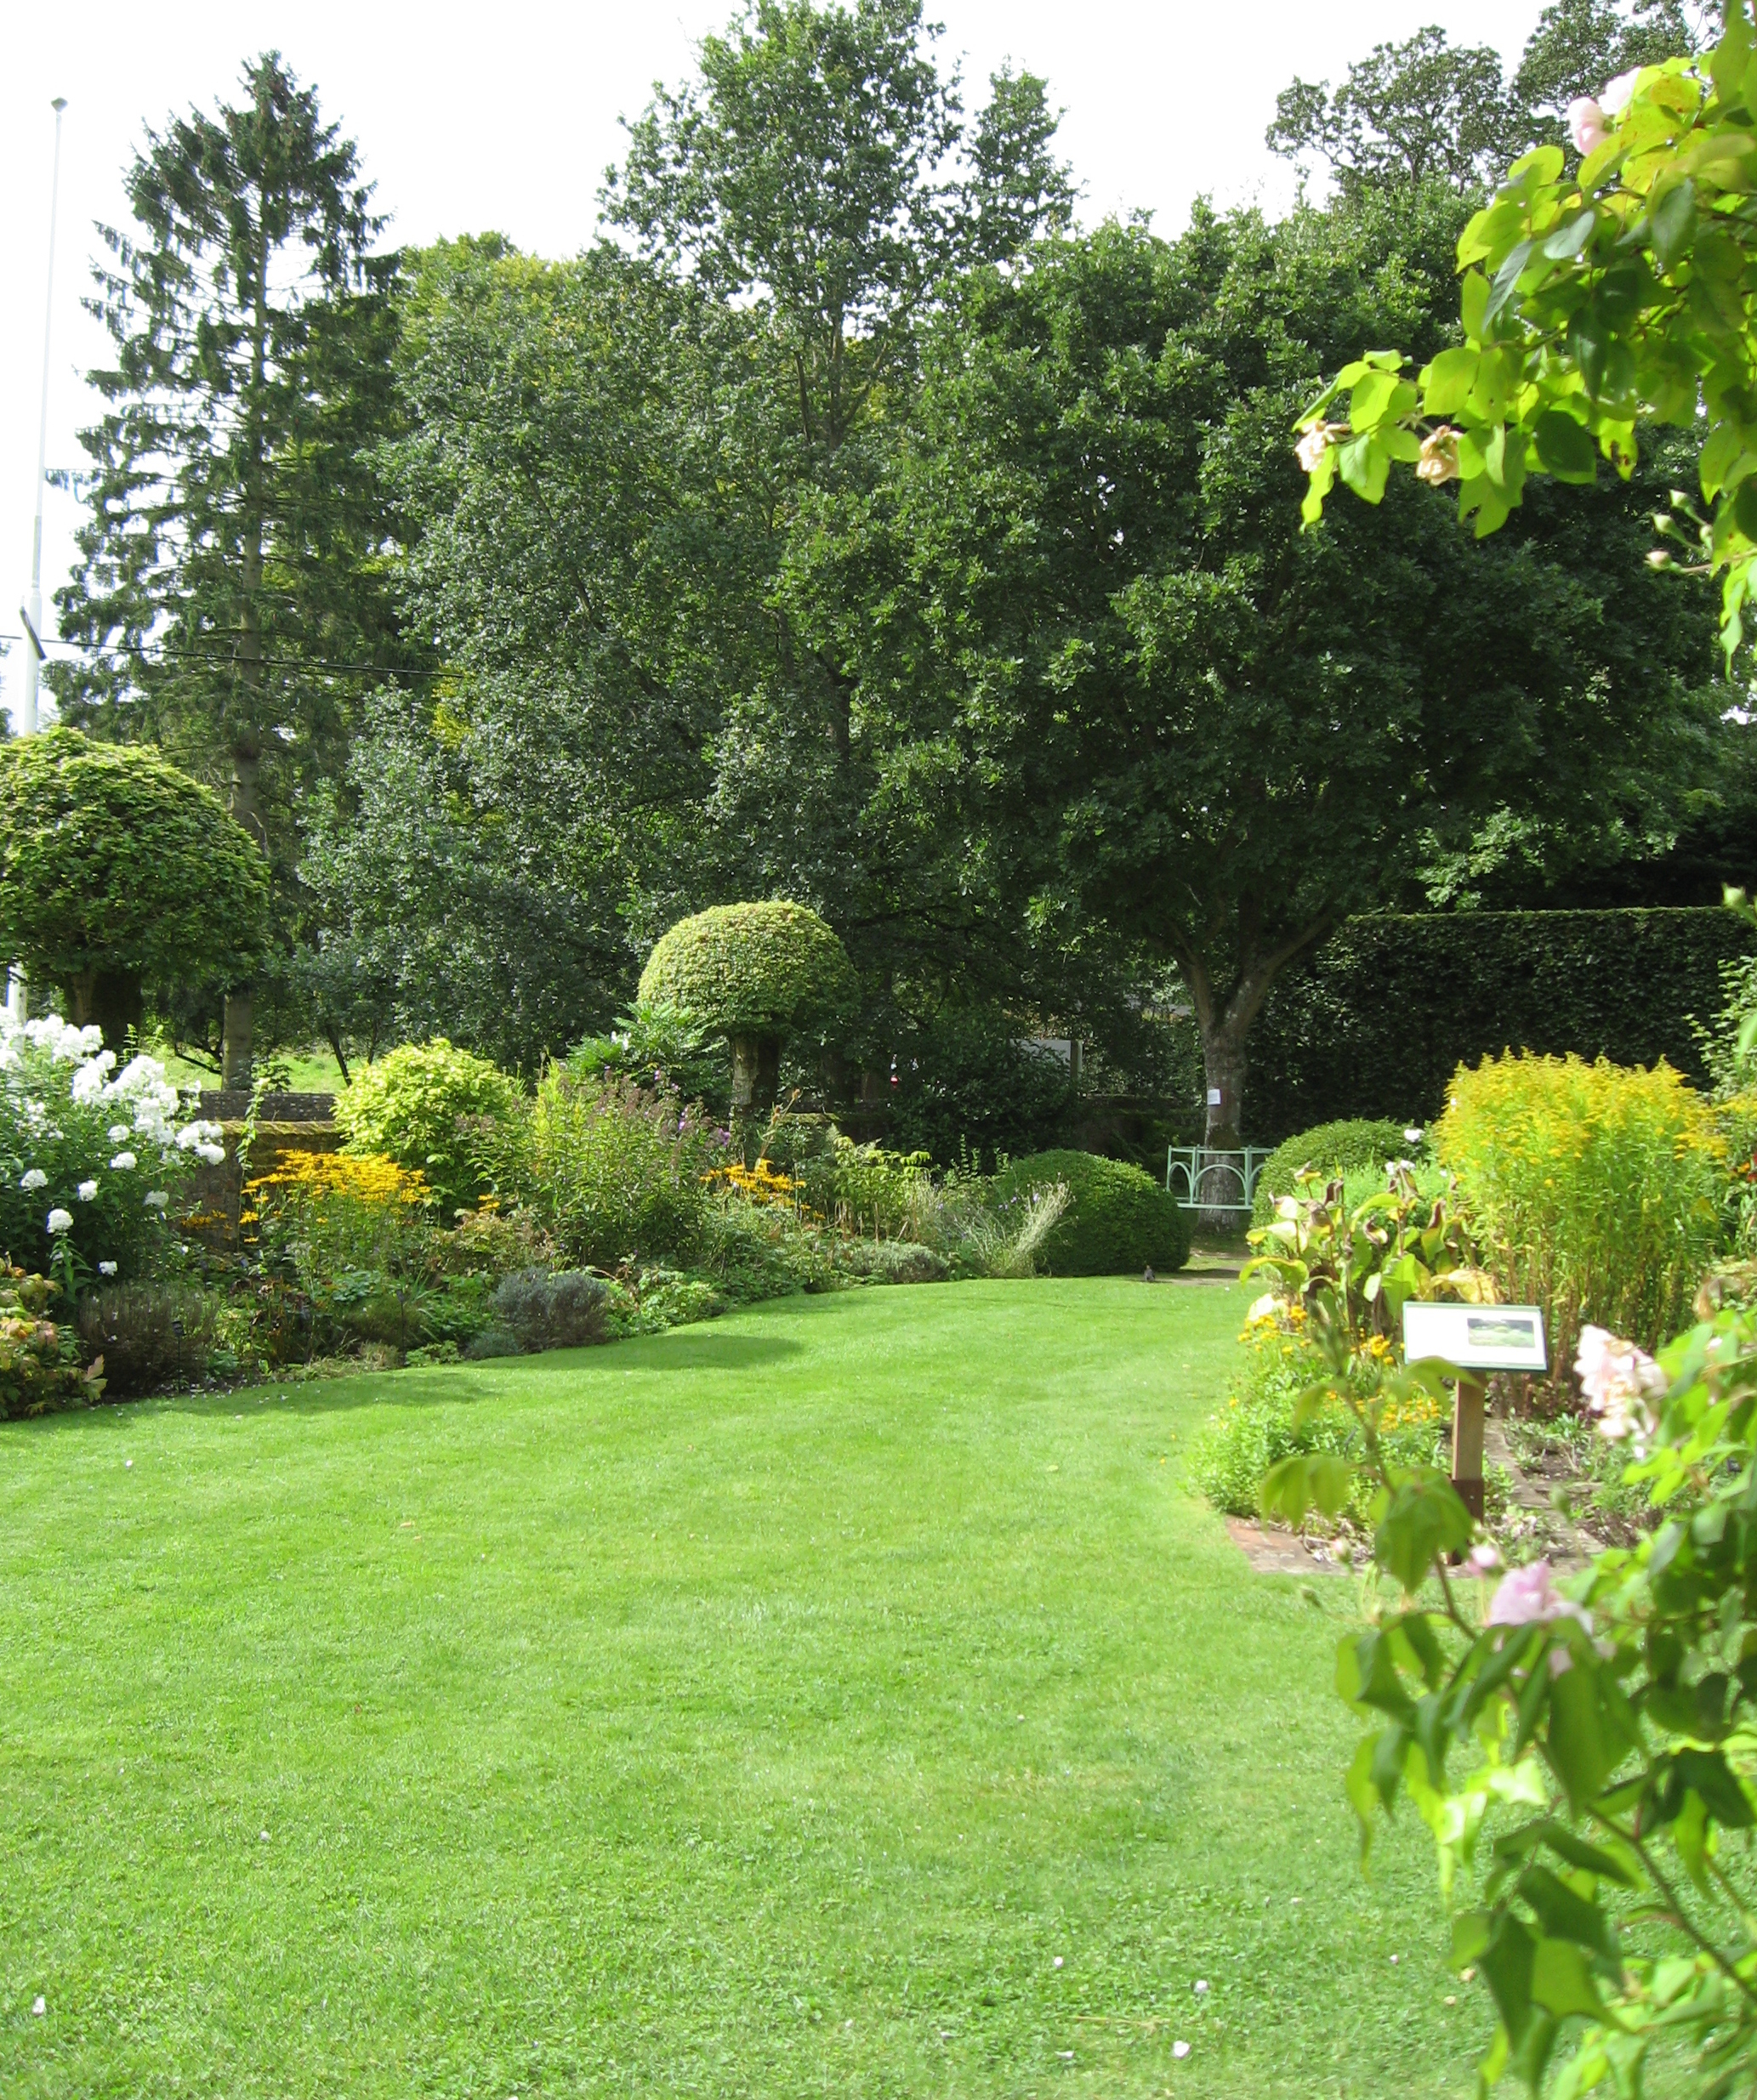 The garden at Chawton Cottage.  Credit: Sue Wilkes